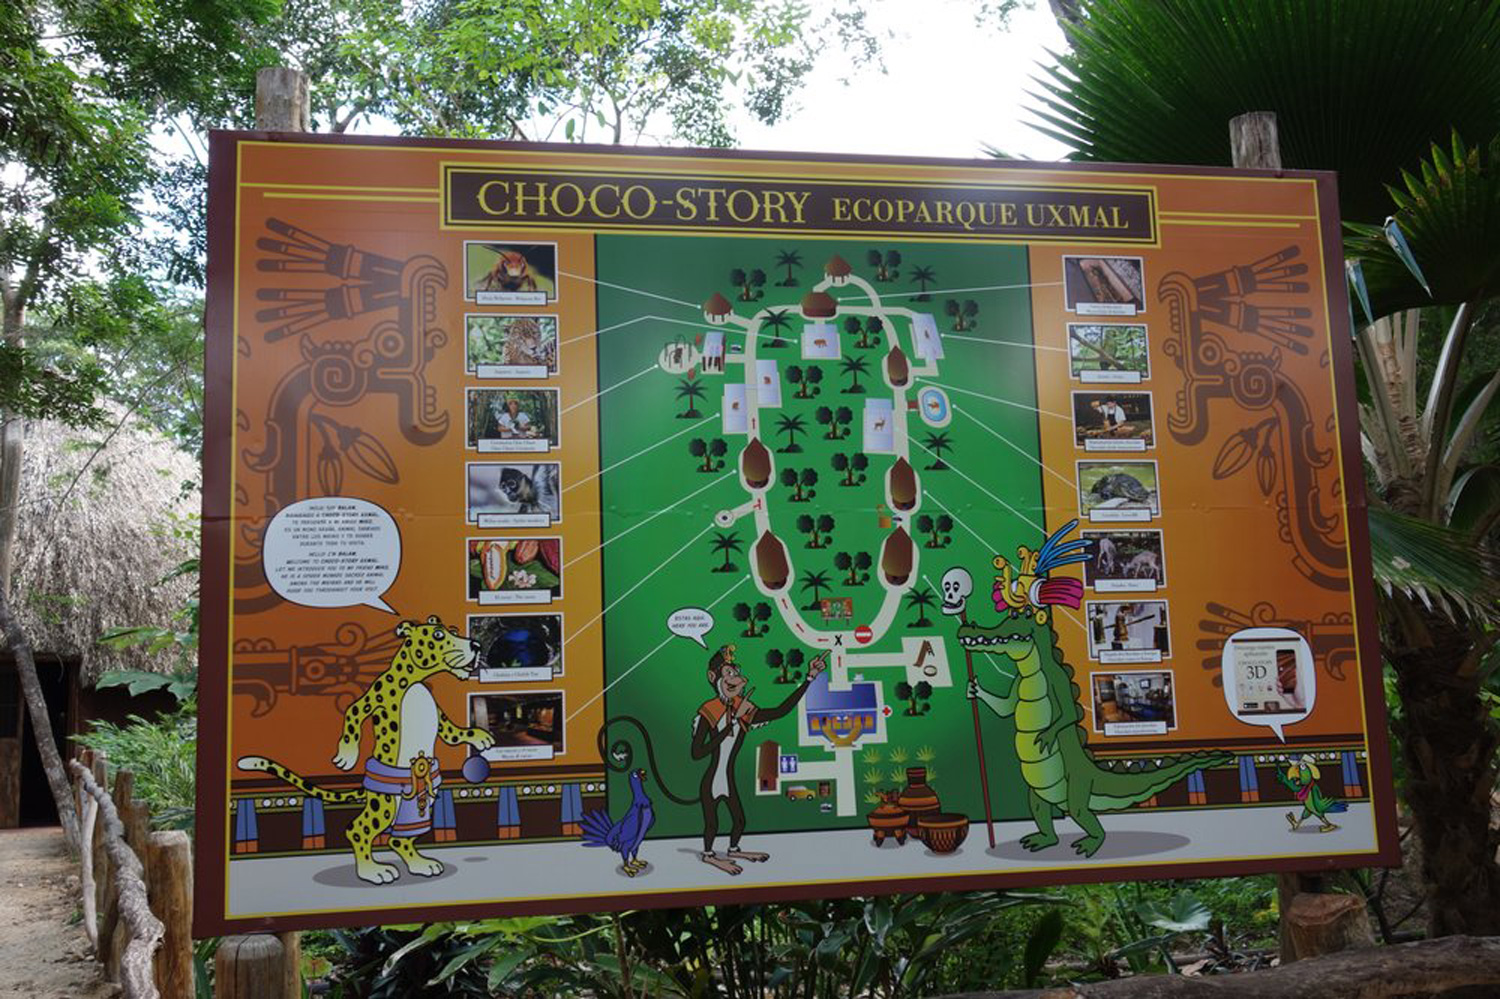 Hammocks_and_Ruins_Riviera_Maya_Mexico_Explore_What_to_Do_Yucatan_Hammocks_Ruins_Choco_story_Uxmal_53.jpg